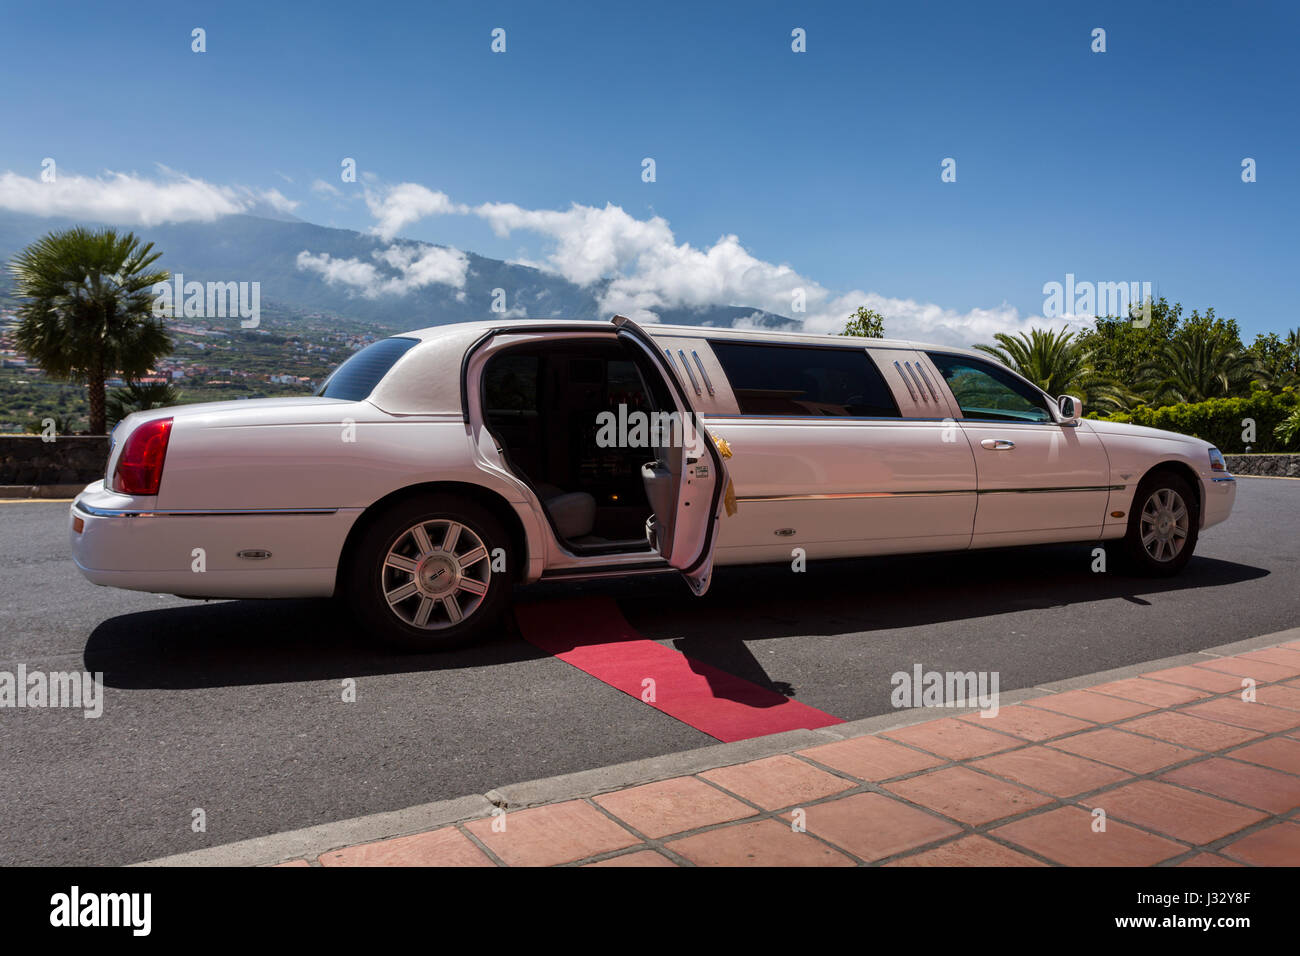 White Lincoln Limousine Car Decorated For A Wedding Party And With